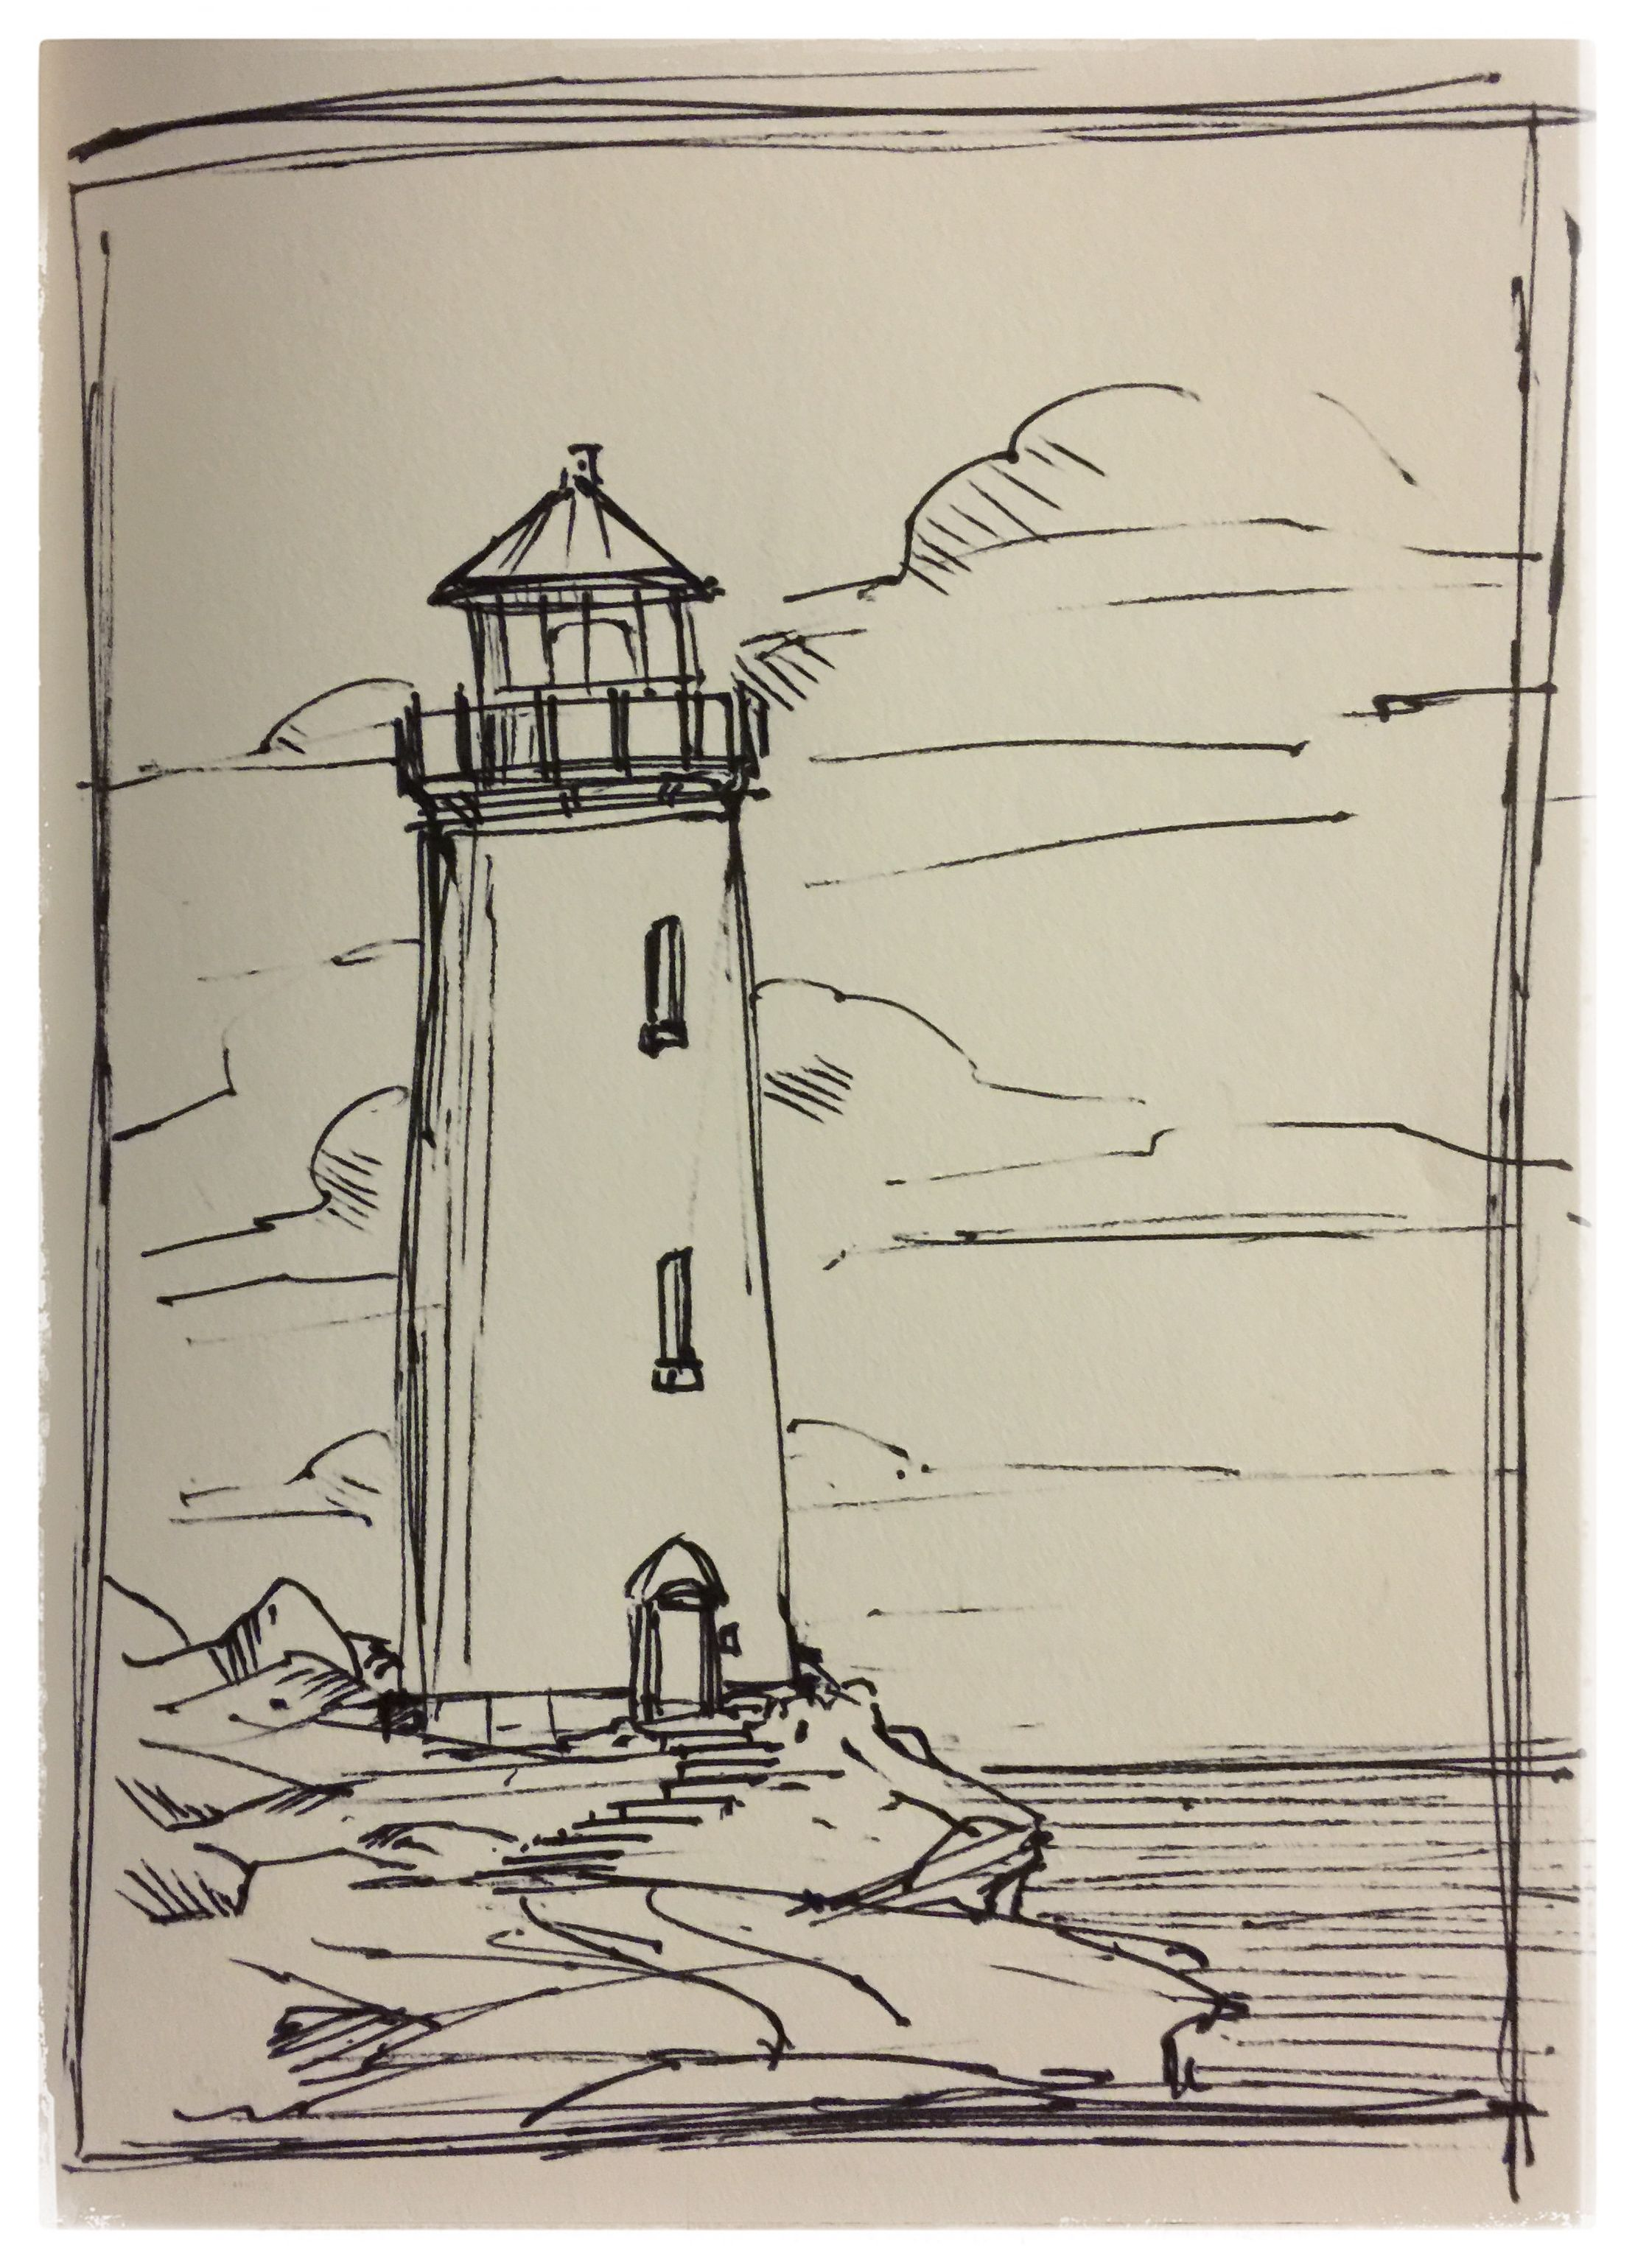 29 Lighthouse Ink Scene Scenery Sketch Layout Doodle Drawing